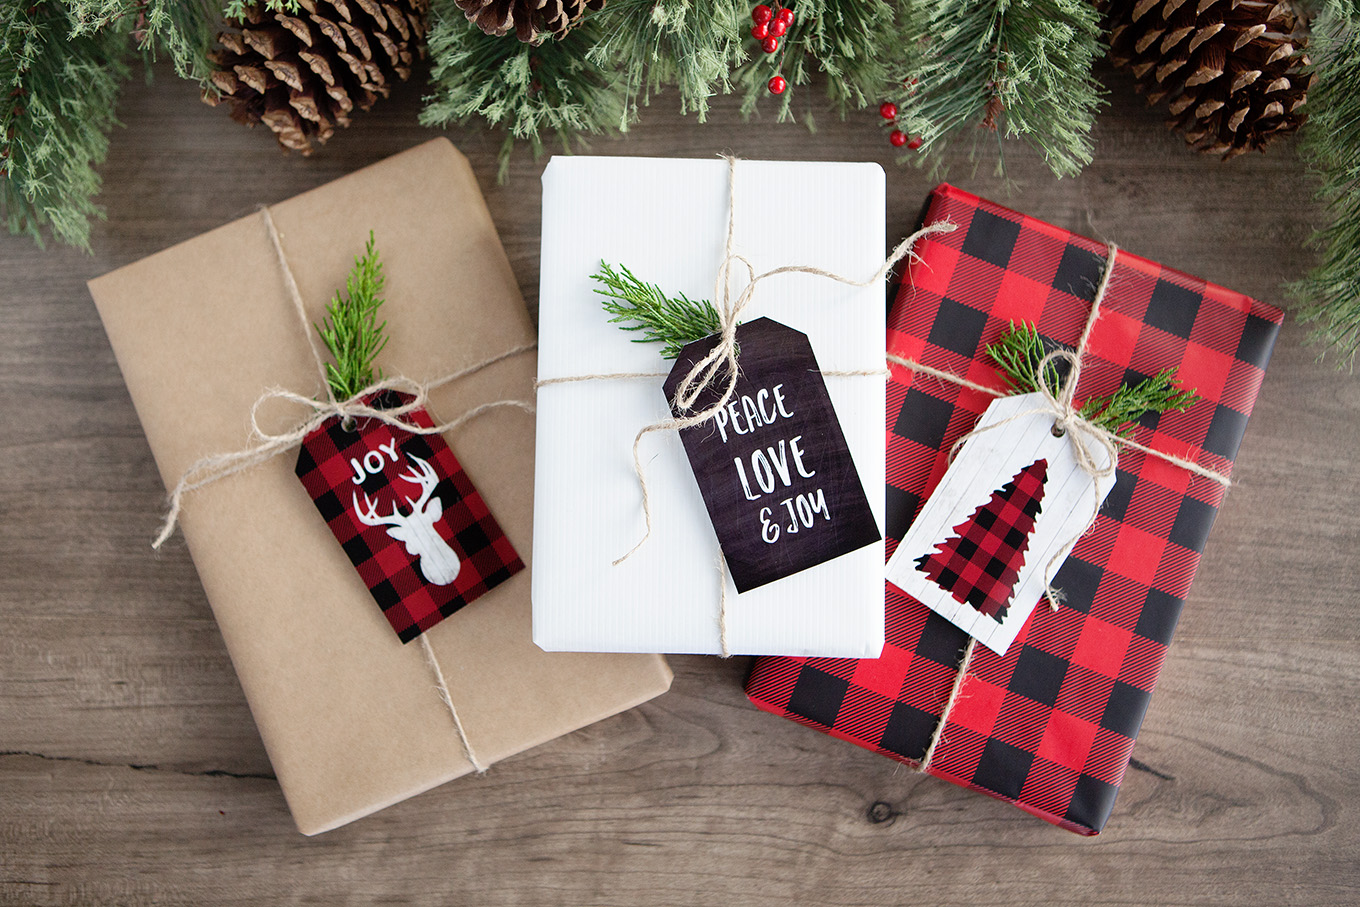 add a little rustic outdoorsy flair to your holiday decor and gift wrapping with these